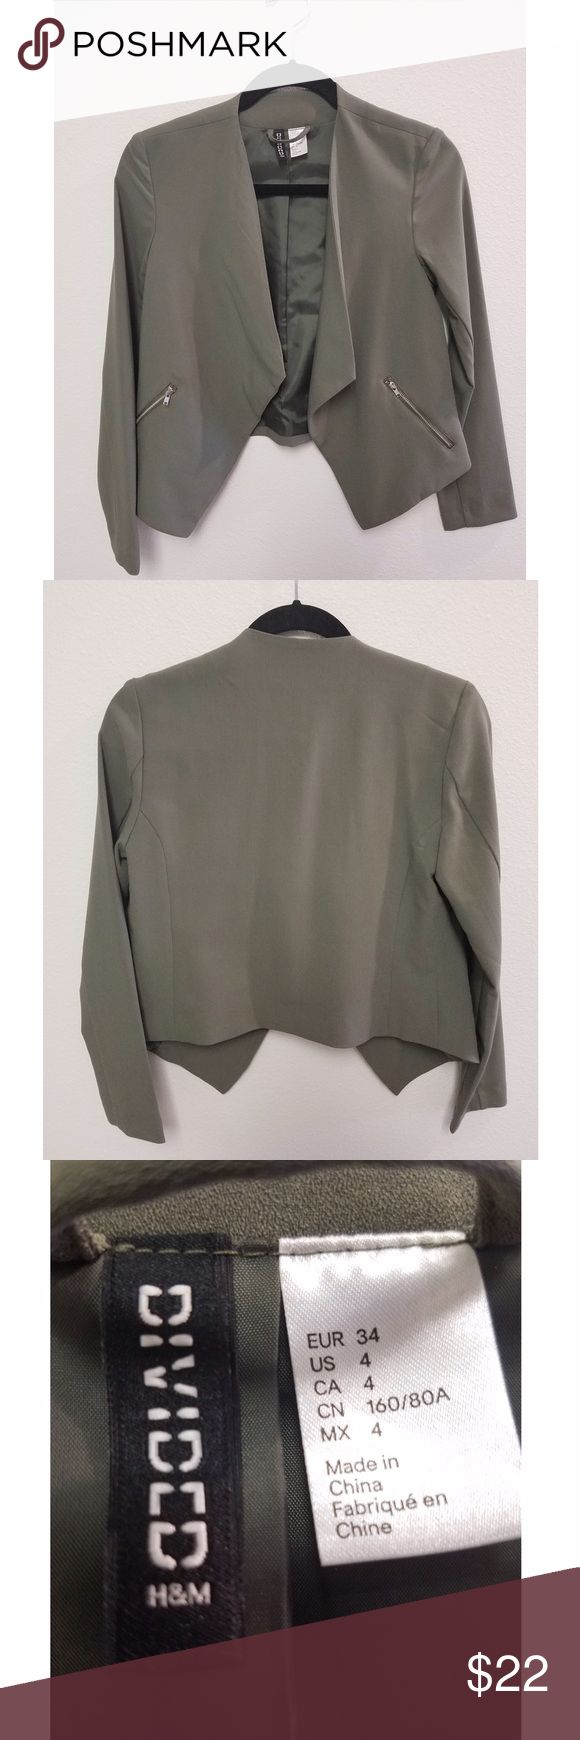 Chic collarless olive green blazer || h&m Fits more like a 2, never worn and new with tags! Looks a bit more deep green in-person than in the pictures. H&M Jackets & Coats